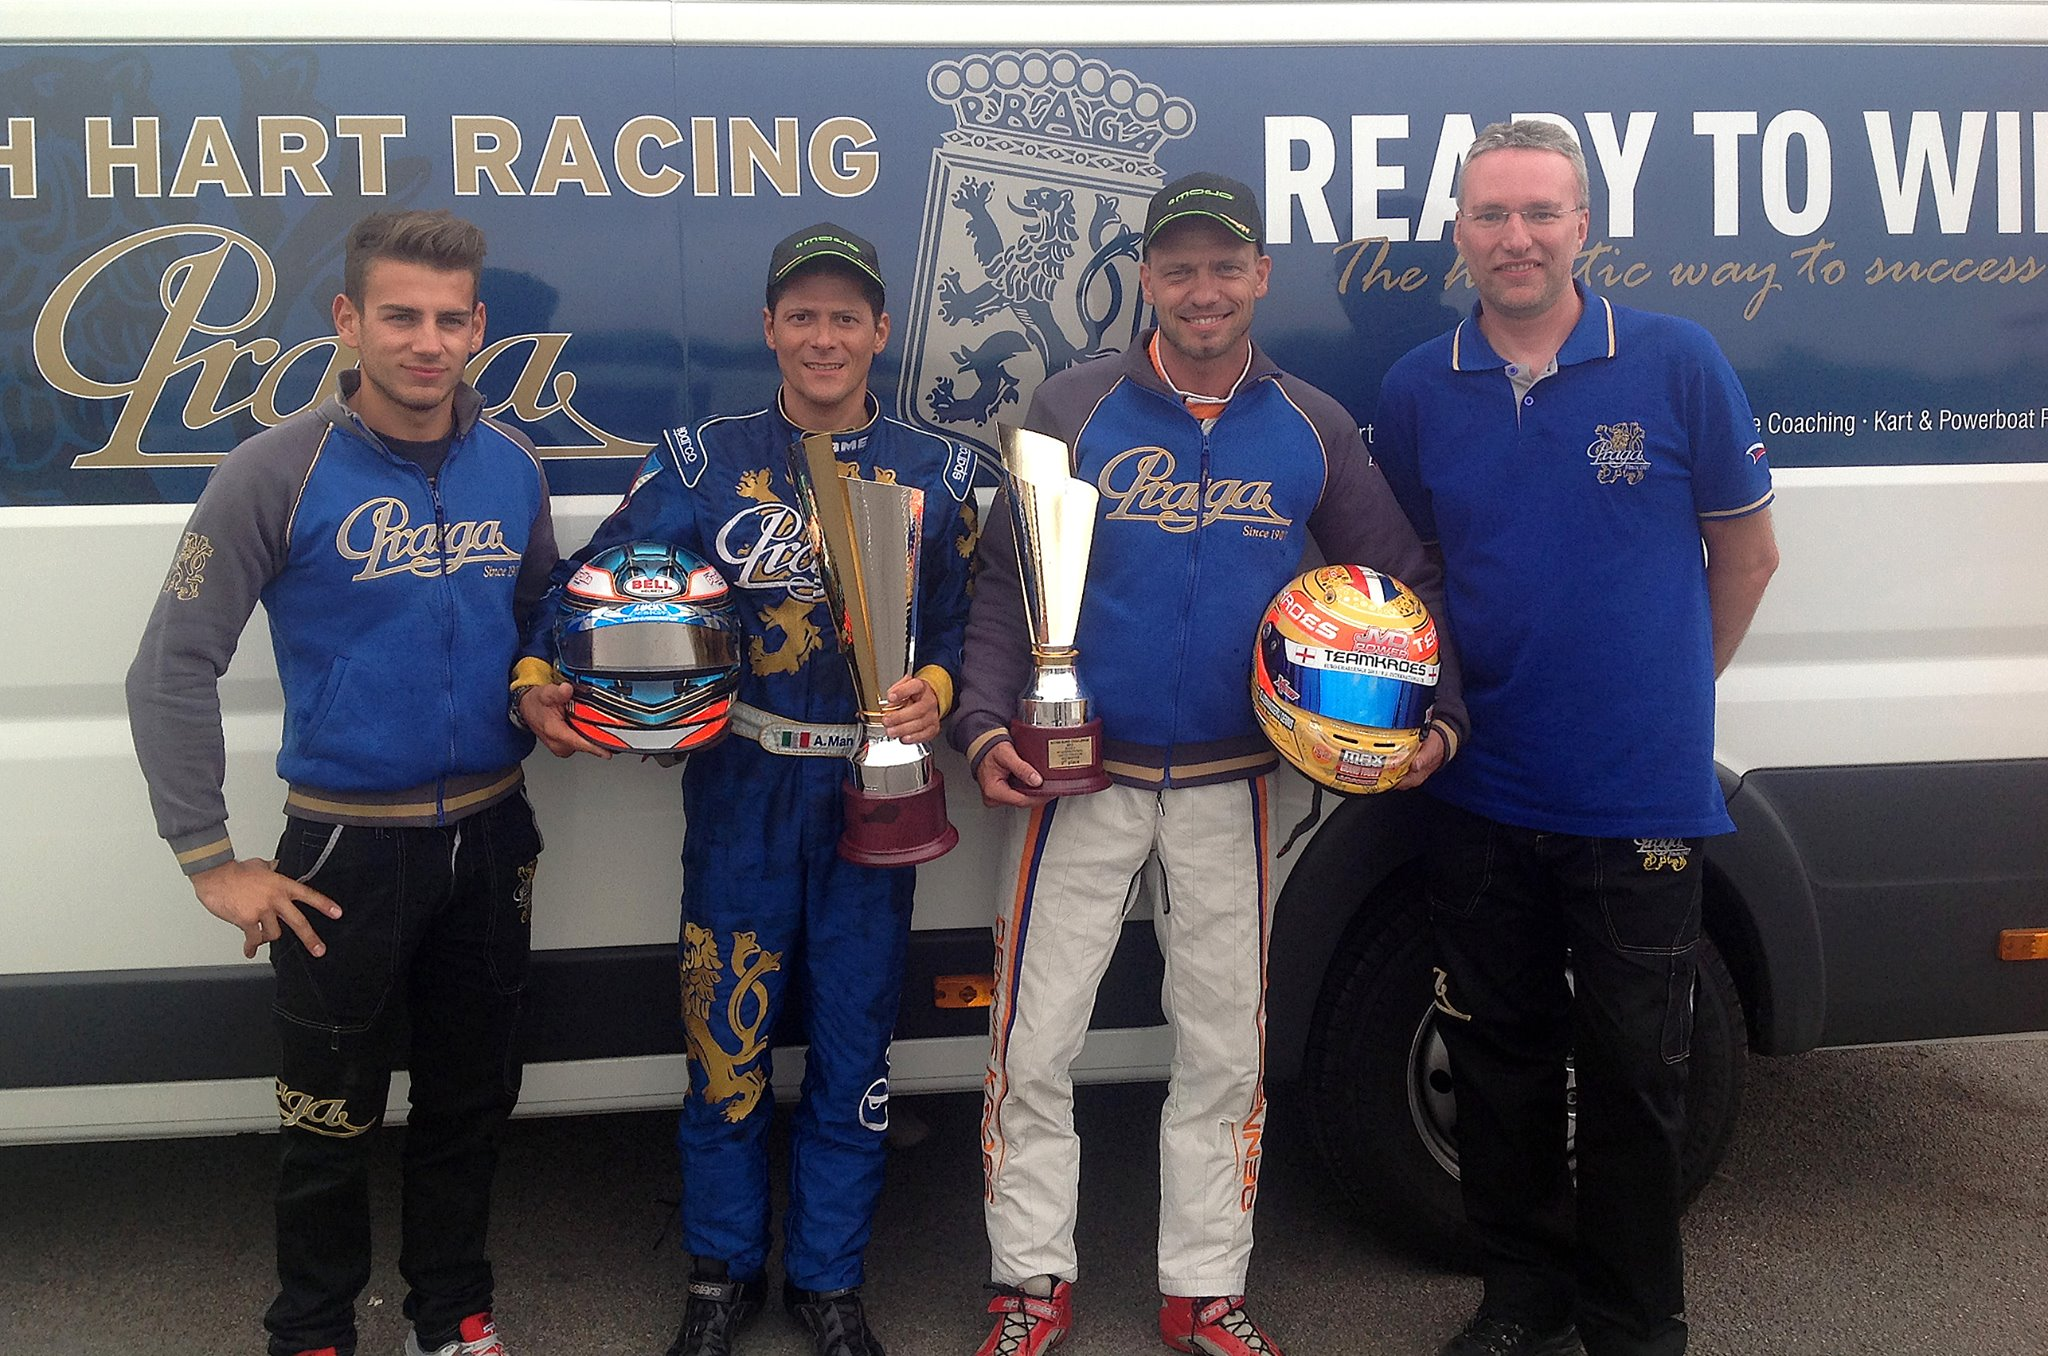 Alessandro Manetti wins again on Praga at Rotax Max Euro Challenge